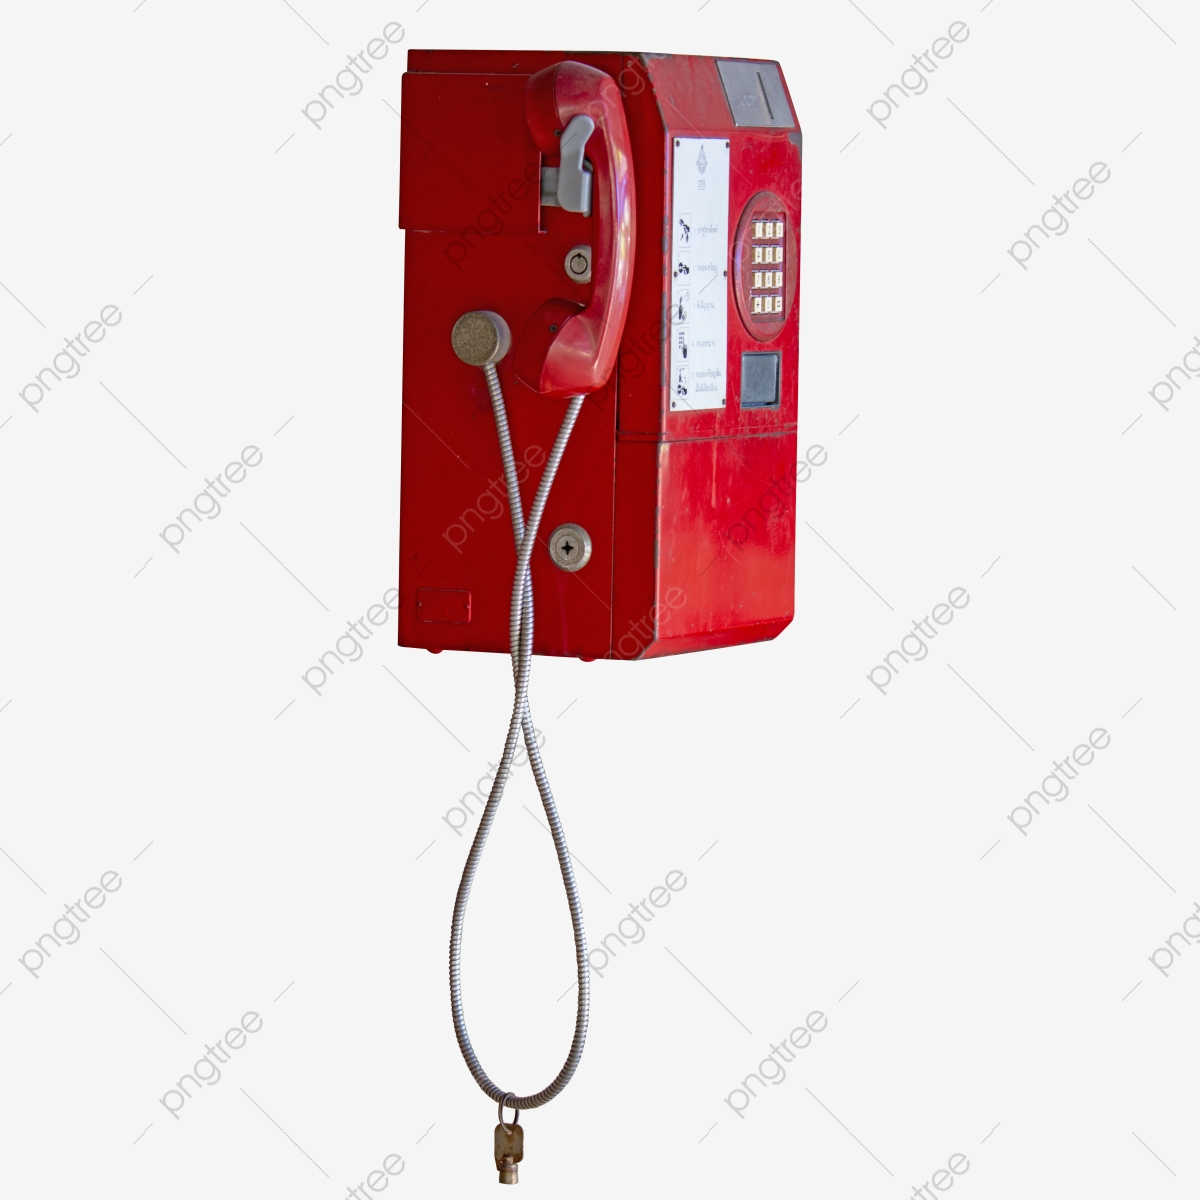 Red Telephone Callbox Insert Coin, Pay Phone, Public Telephone, Pay